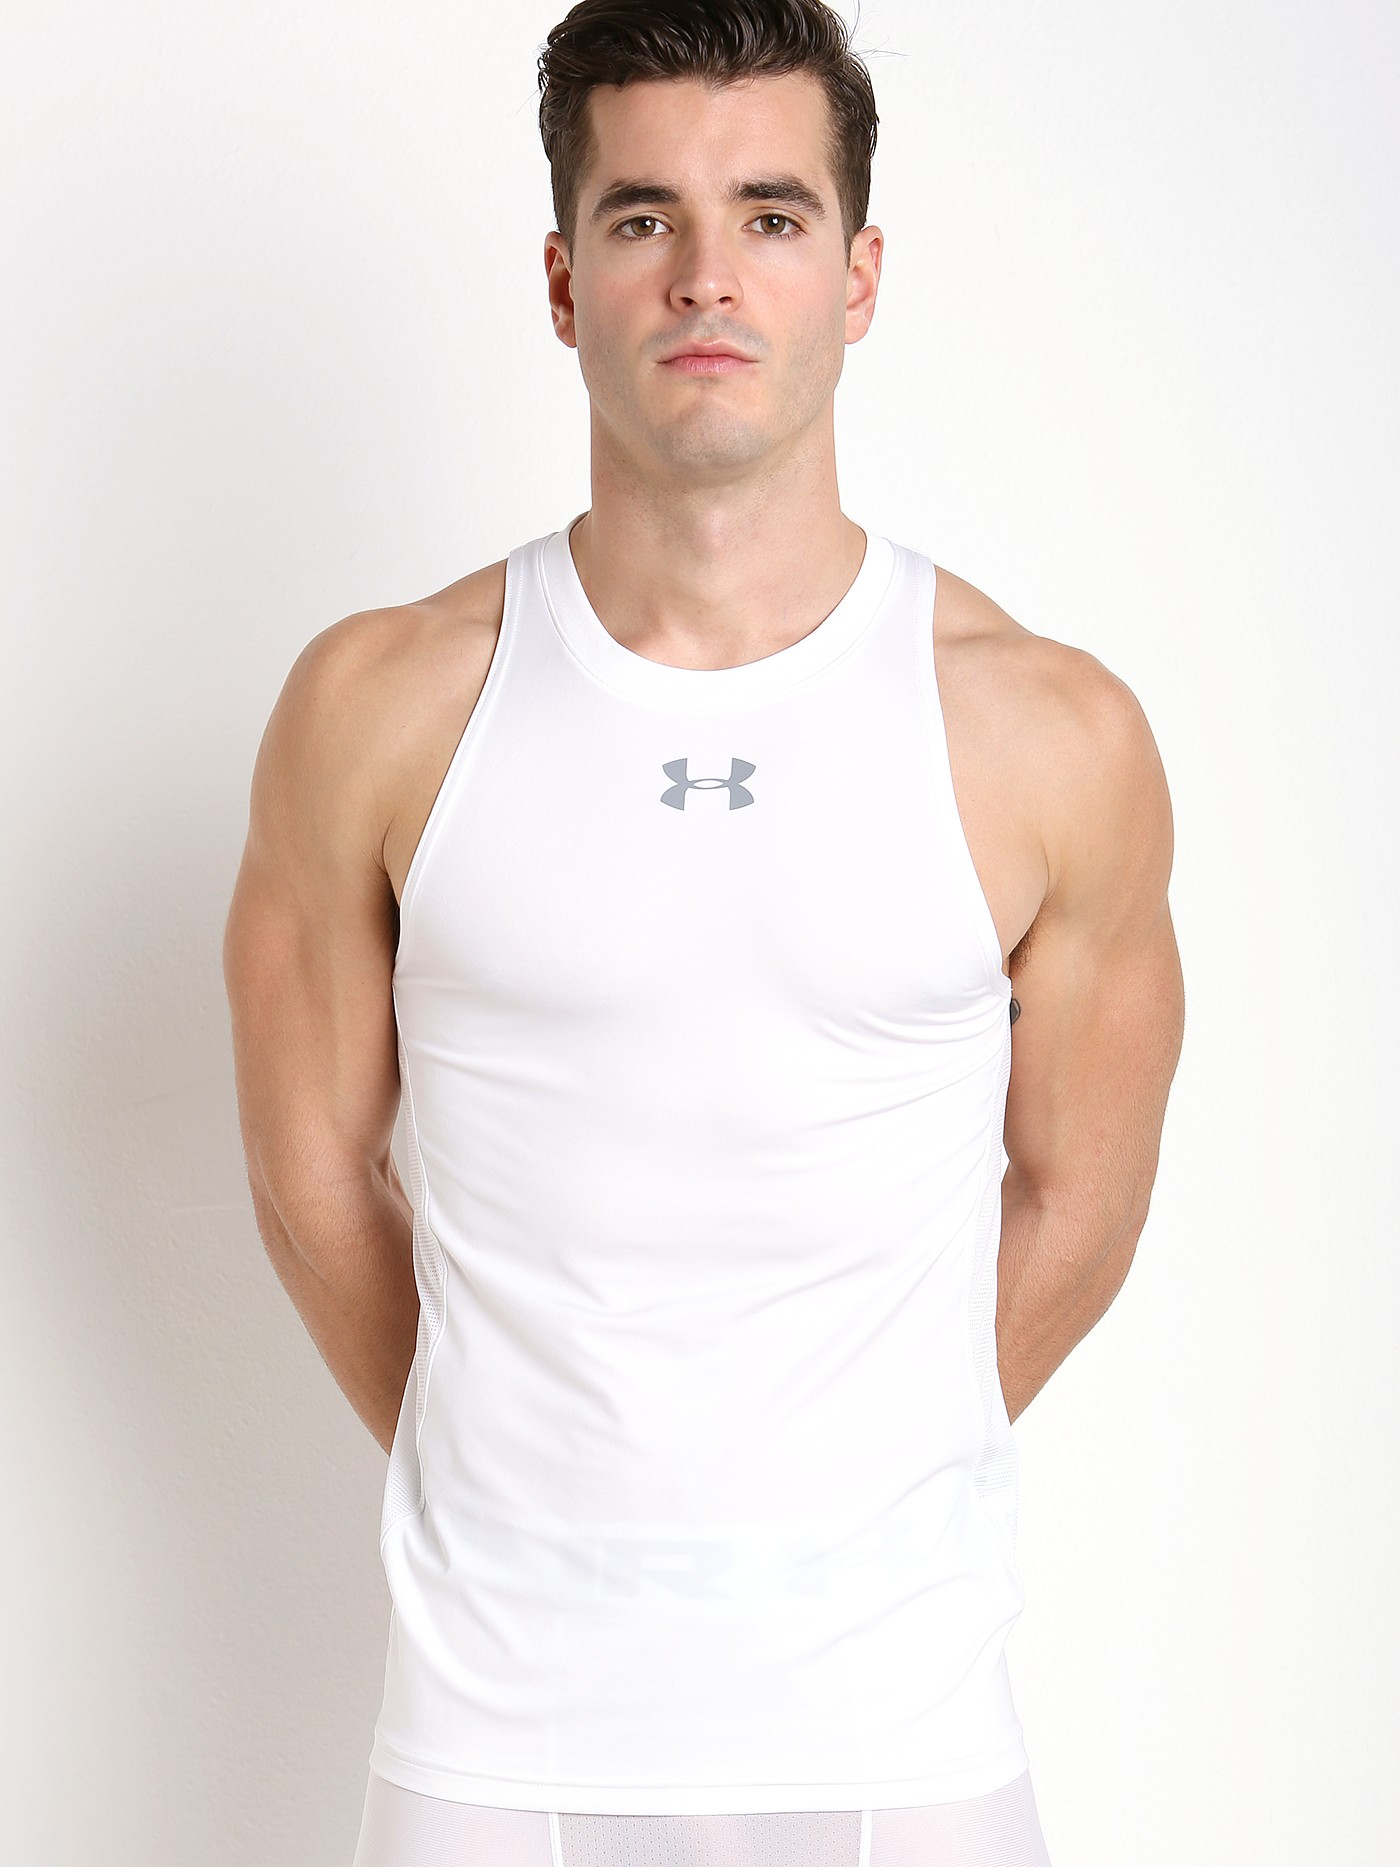 promo code 8ea9e cc0bc Under Armour Baseline Fitted Performance Tank Top White 1290588-100 at  International Jock